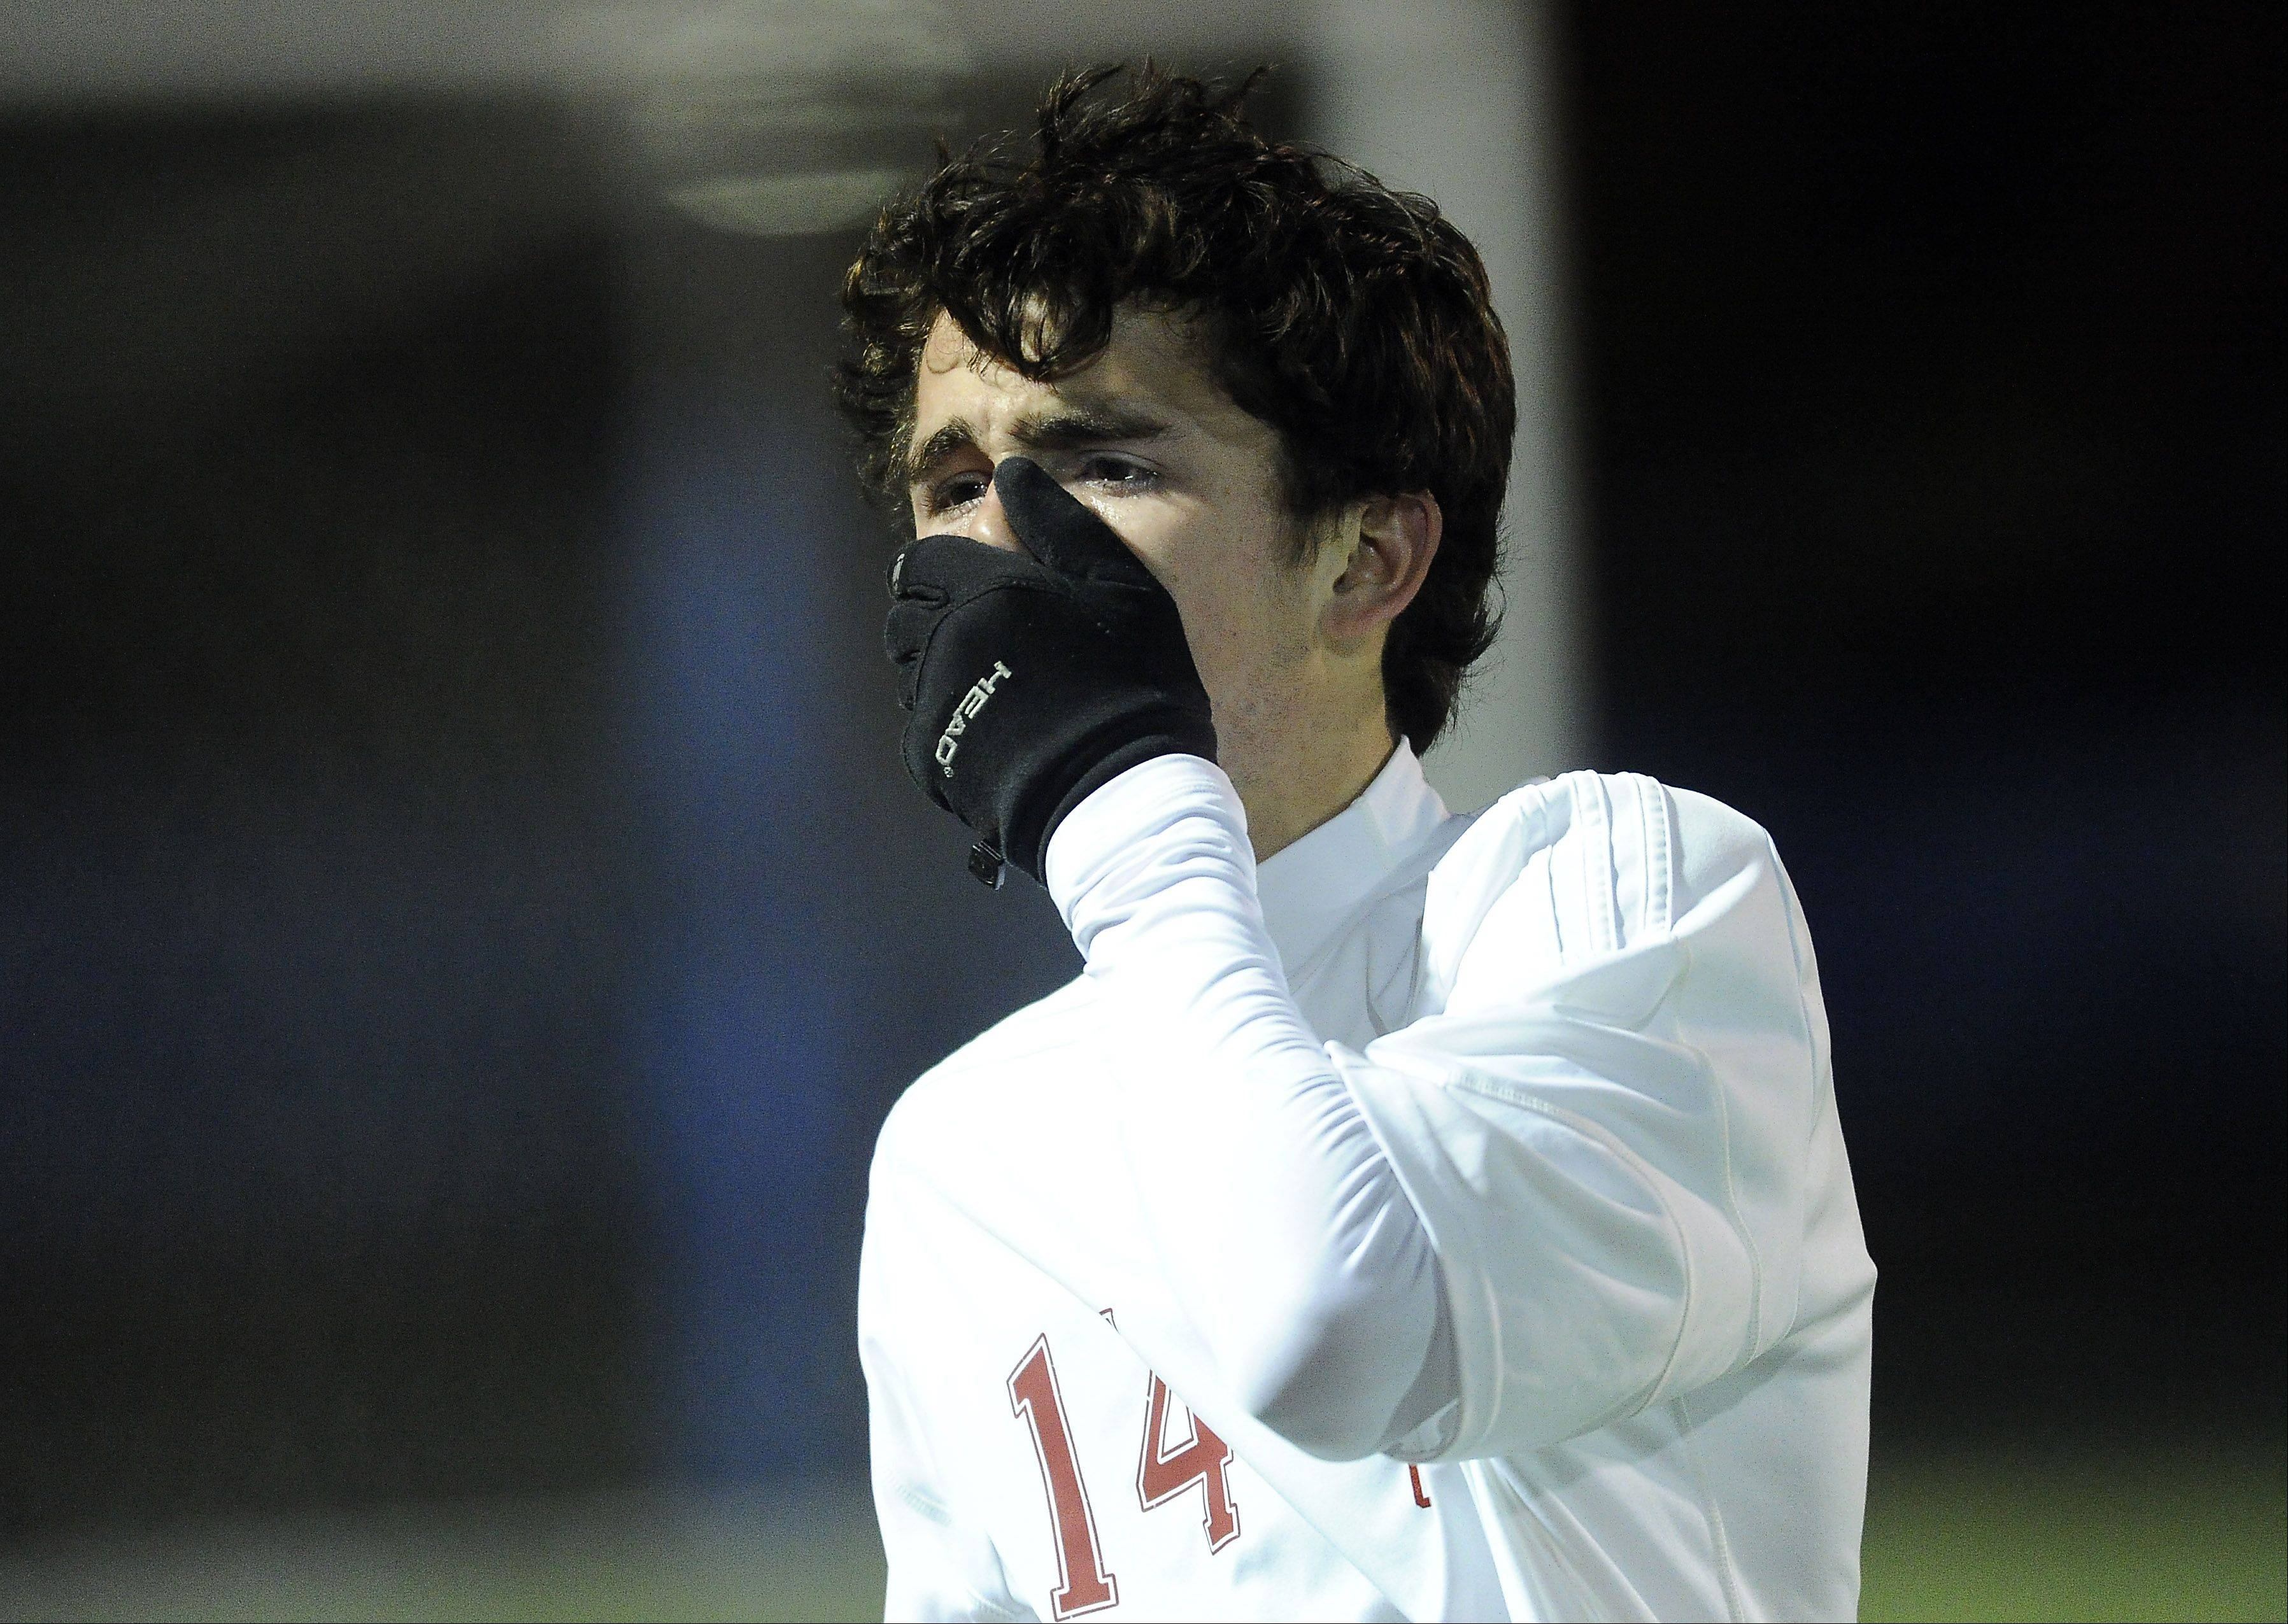 Naperville Central's David Murphy covers his emotions as he walks off the field in the 3-1 loss to Edwardsville's in the Class 3A state semifinals at Hoffman Estates High School on Friday.